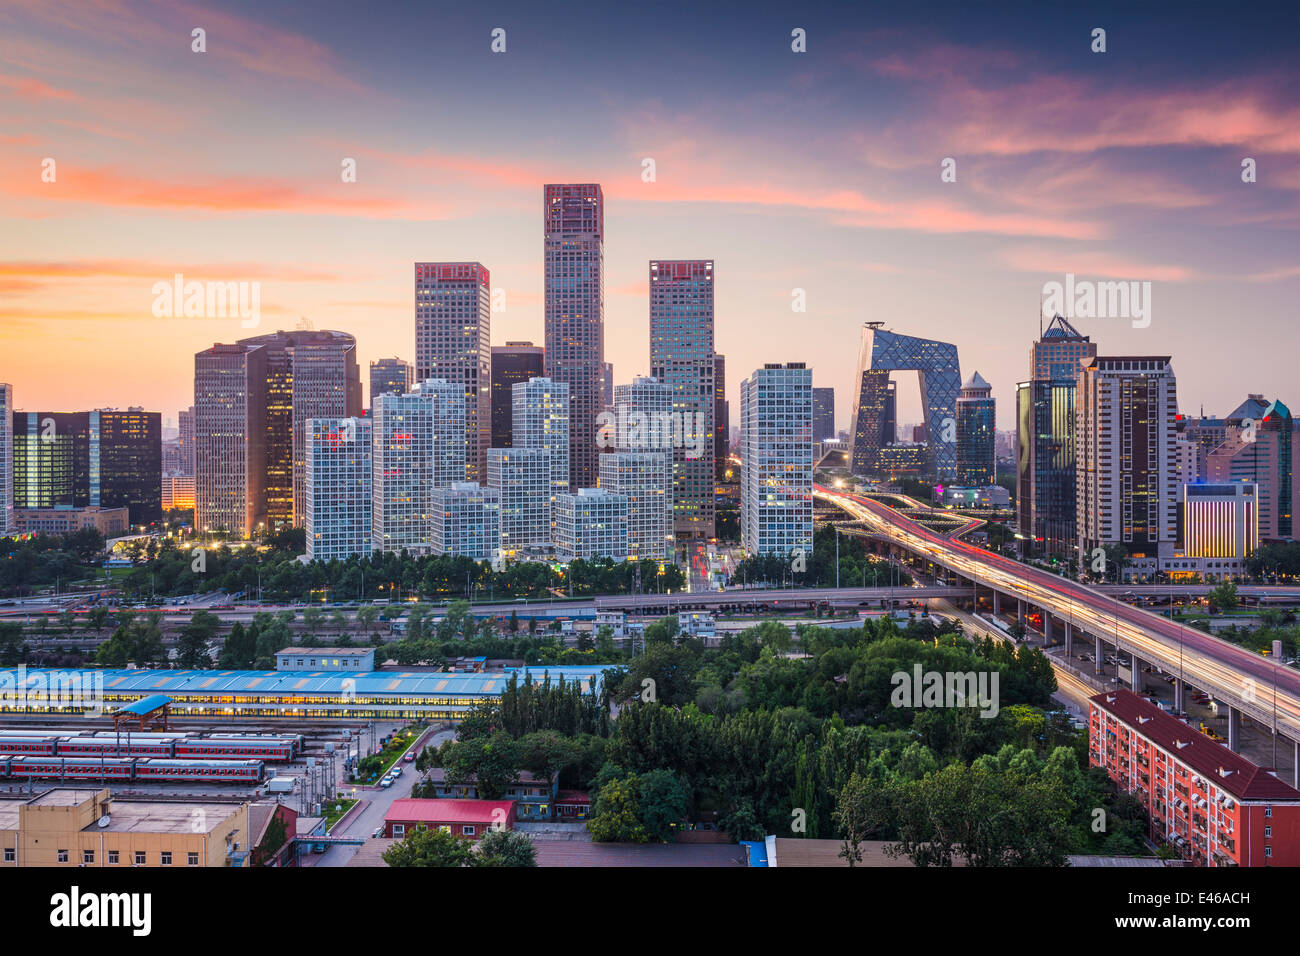 Beijing, China skyline at the central business district. - Stock Image